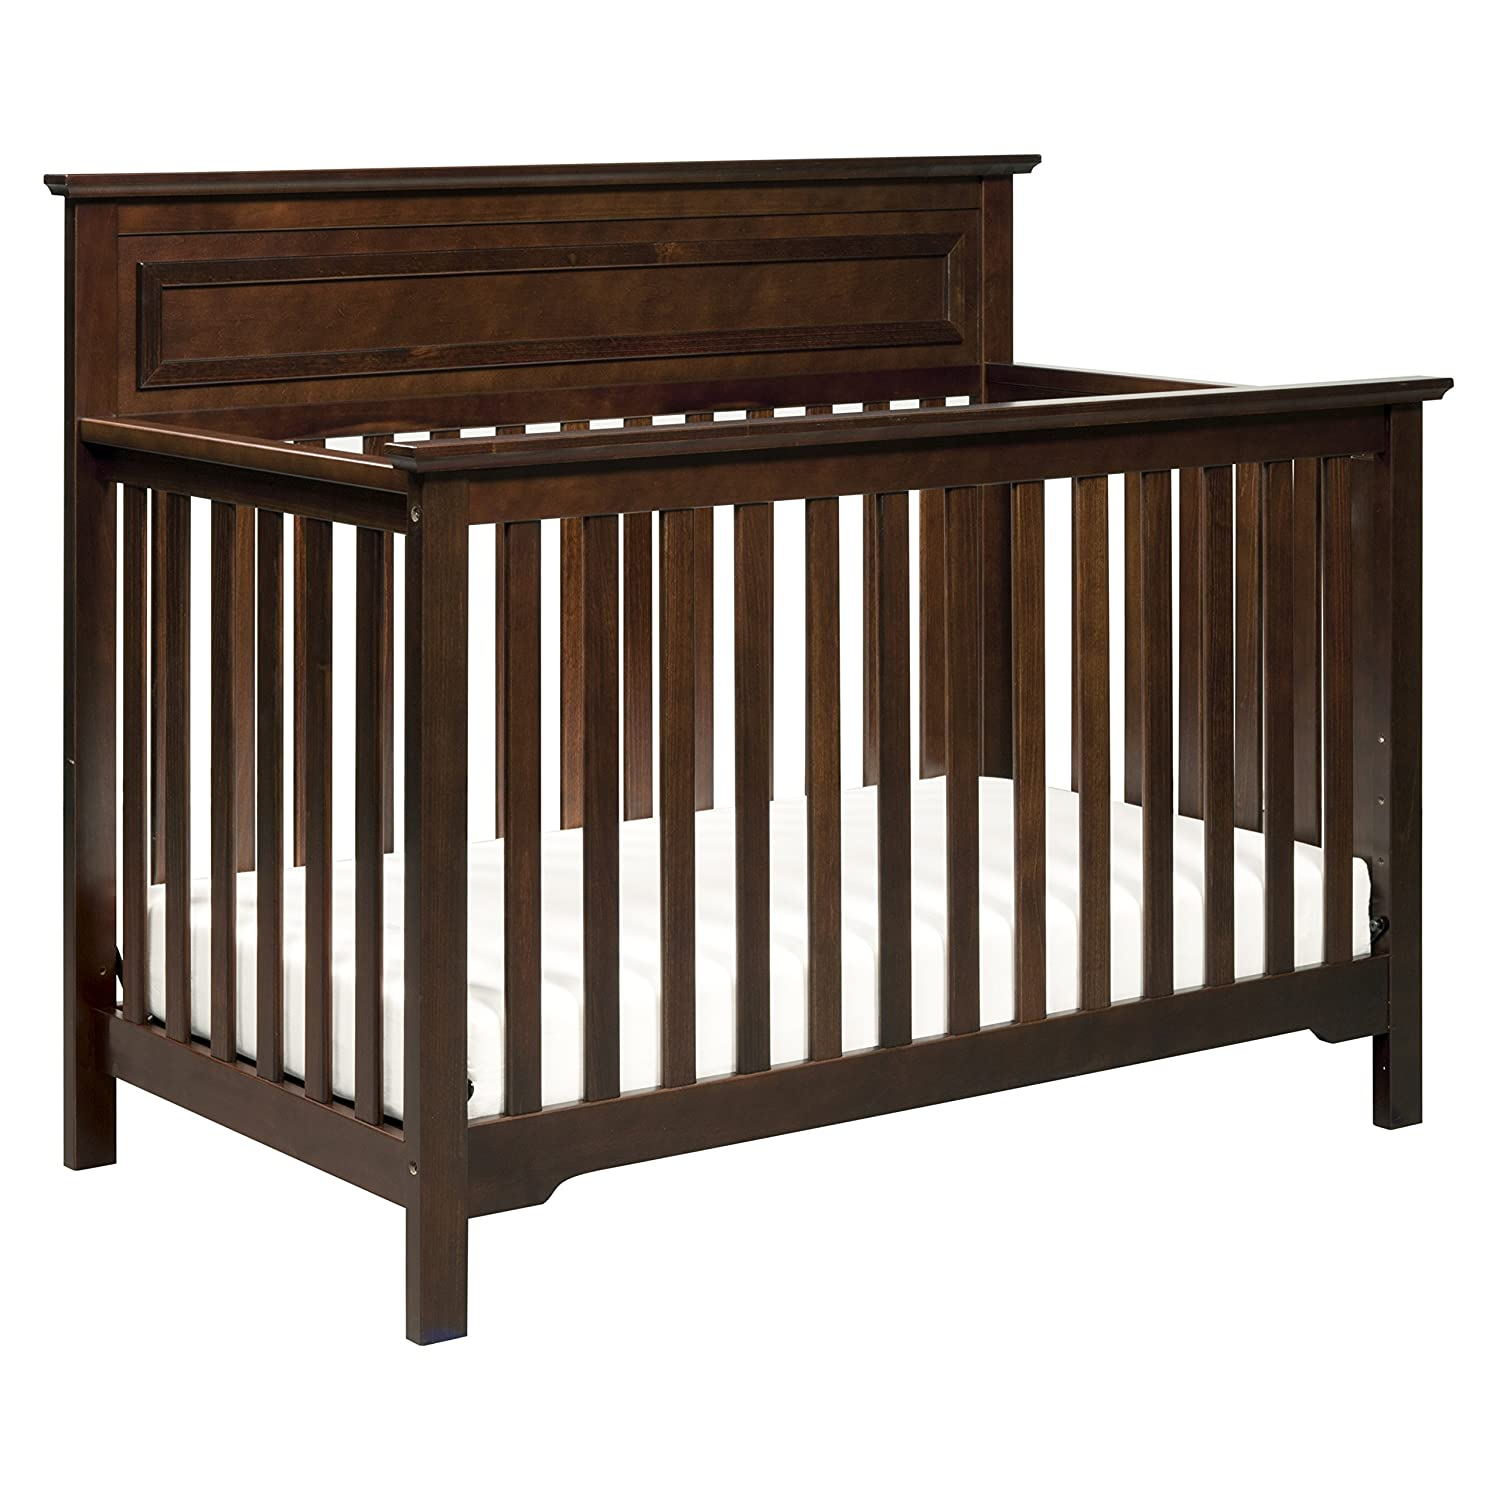 Delightful DaVinci Autumn 4 In 1 Convertible Crib, Espresso